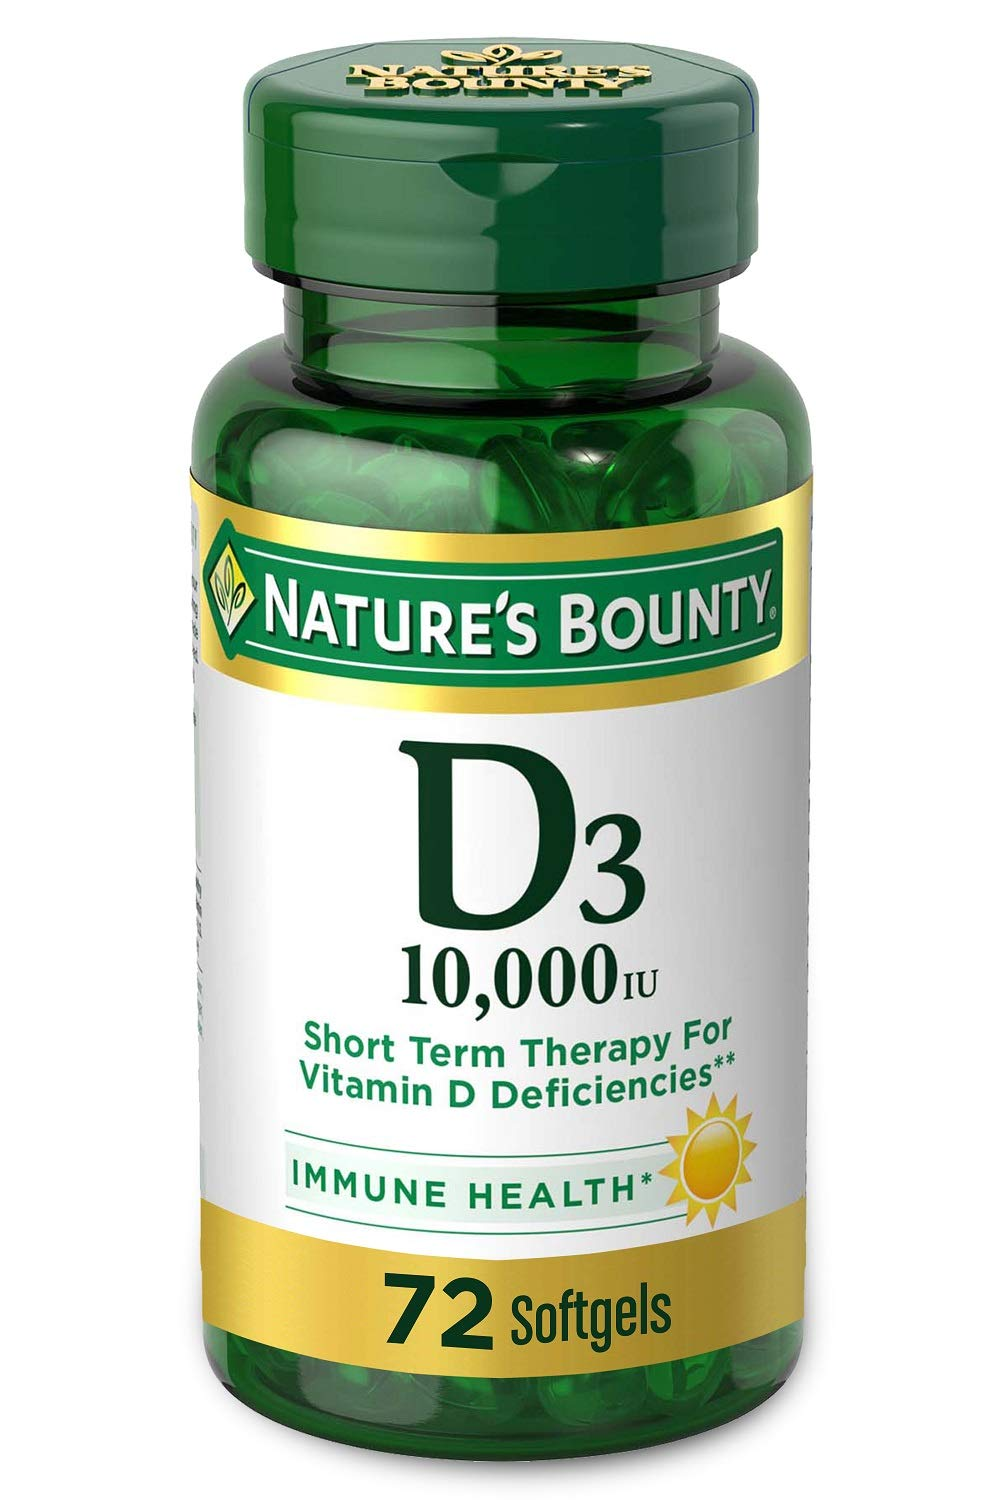 Nature's Bounty Vitamin D for Immune Support and Promotes Healthy Bones, 10000IU, Softgels, Multi-Color, 10,000 IU, 72 Count (Pack of 1)